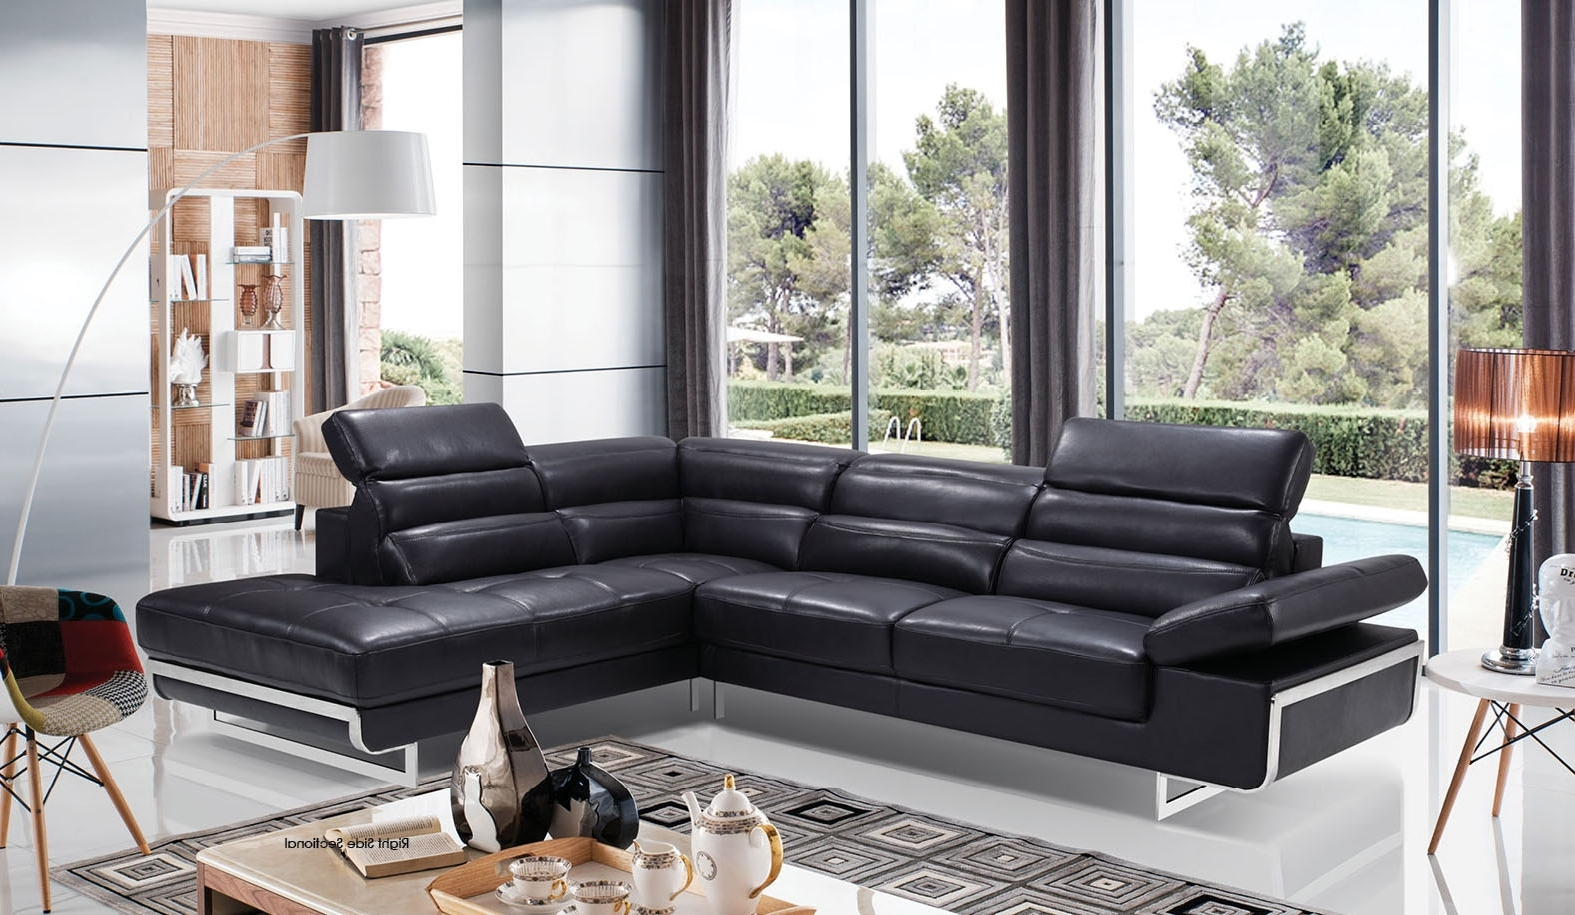 Well Known High Class Italian Leather Living Room Furniture Jacksonville Inside Jacksonville Florida Sectional Sofas (View 15 of 15)